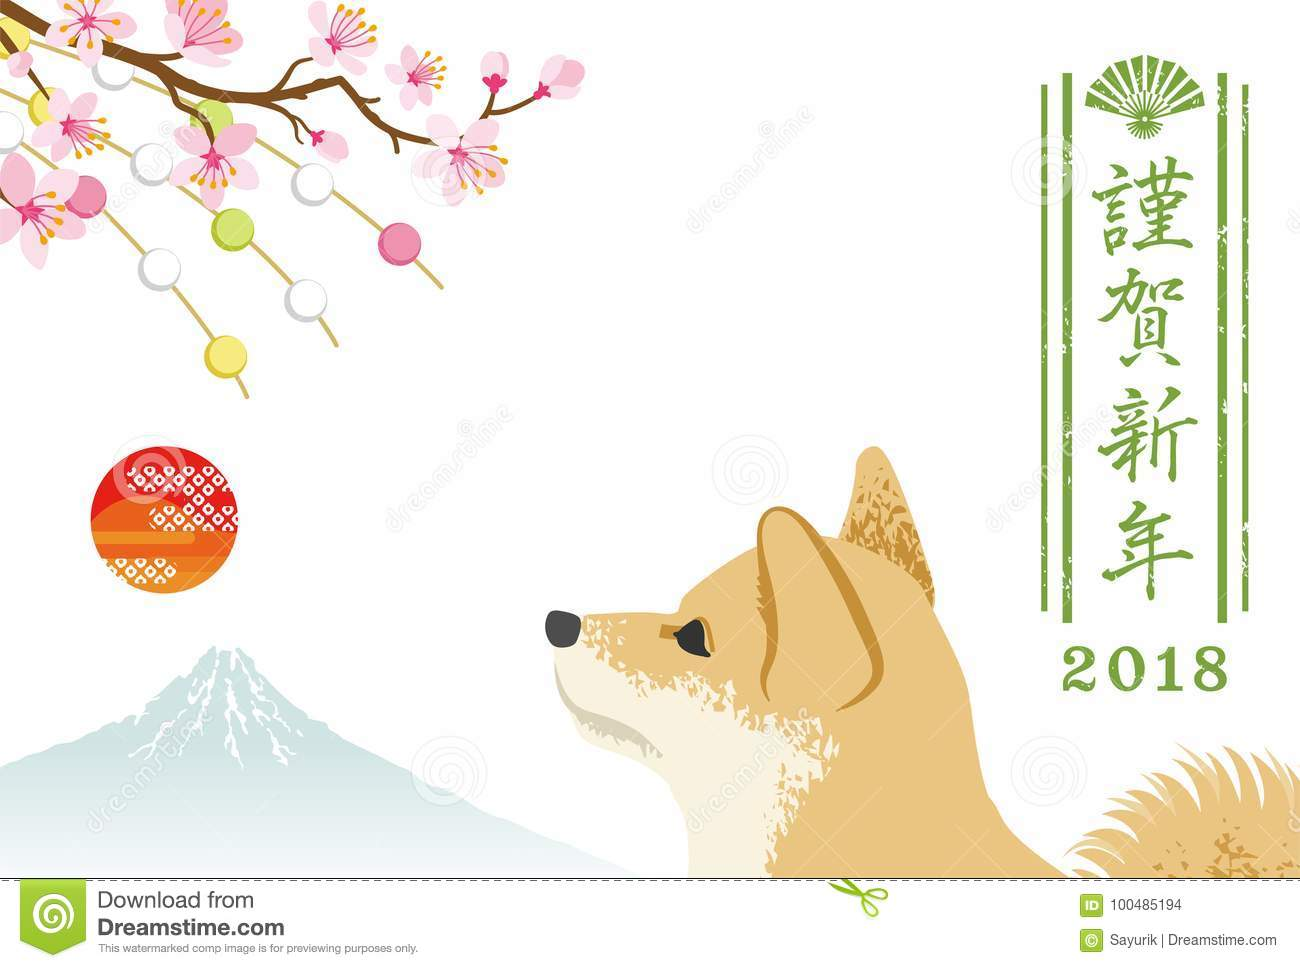 japanese new year card 2018 shiba inu face and sunrise side vi